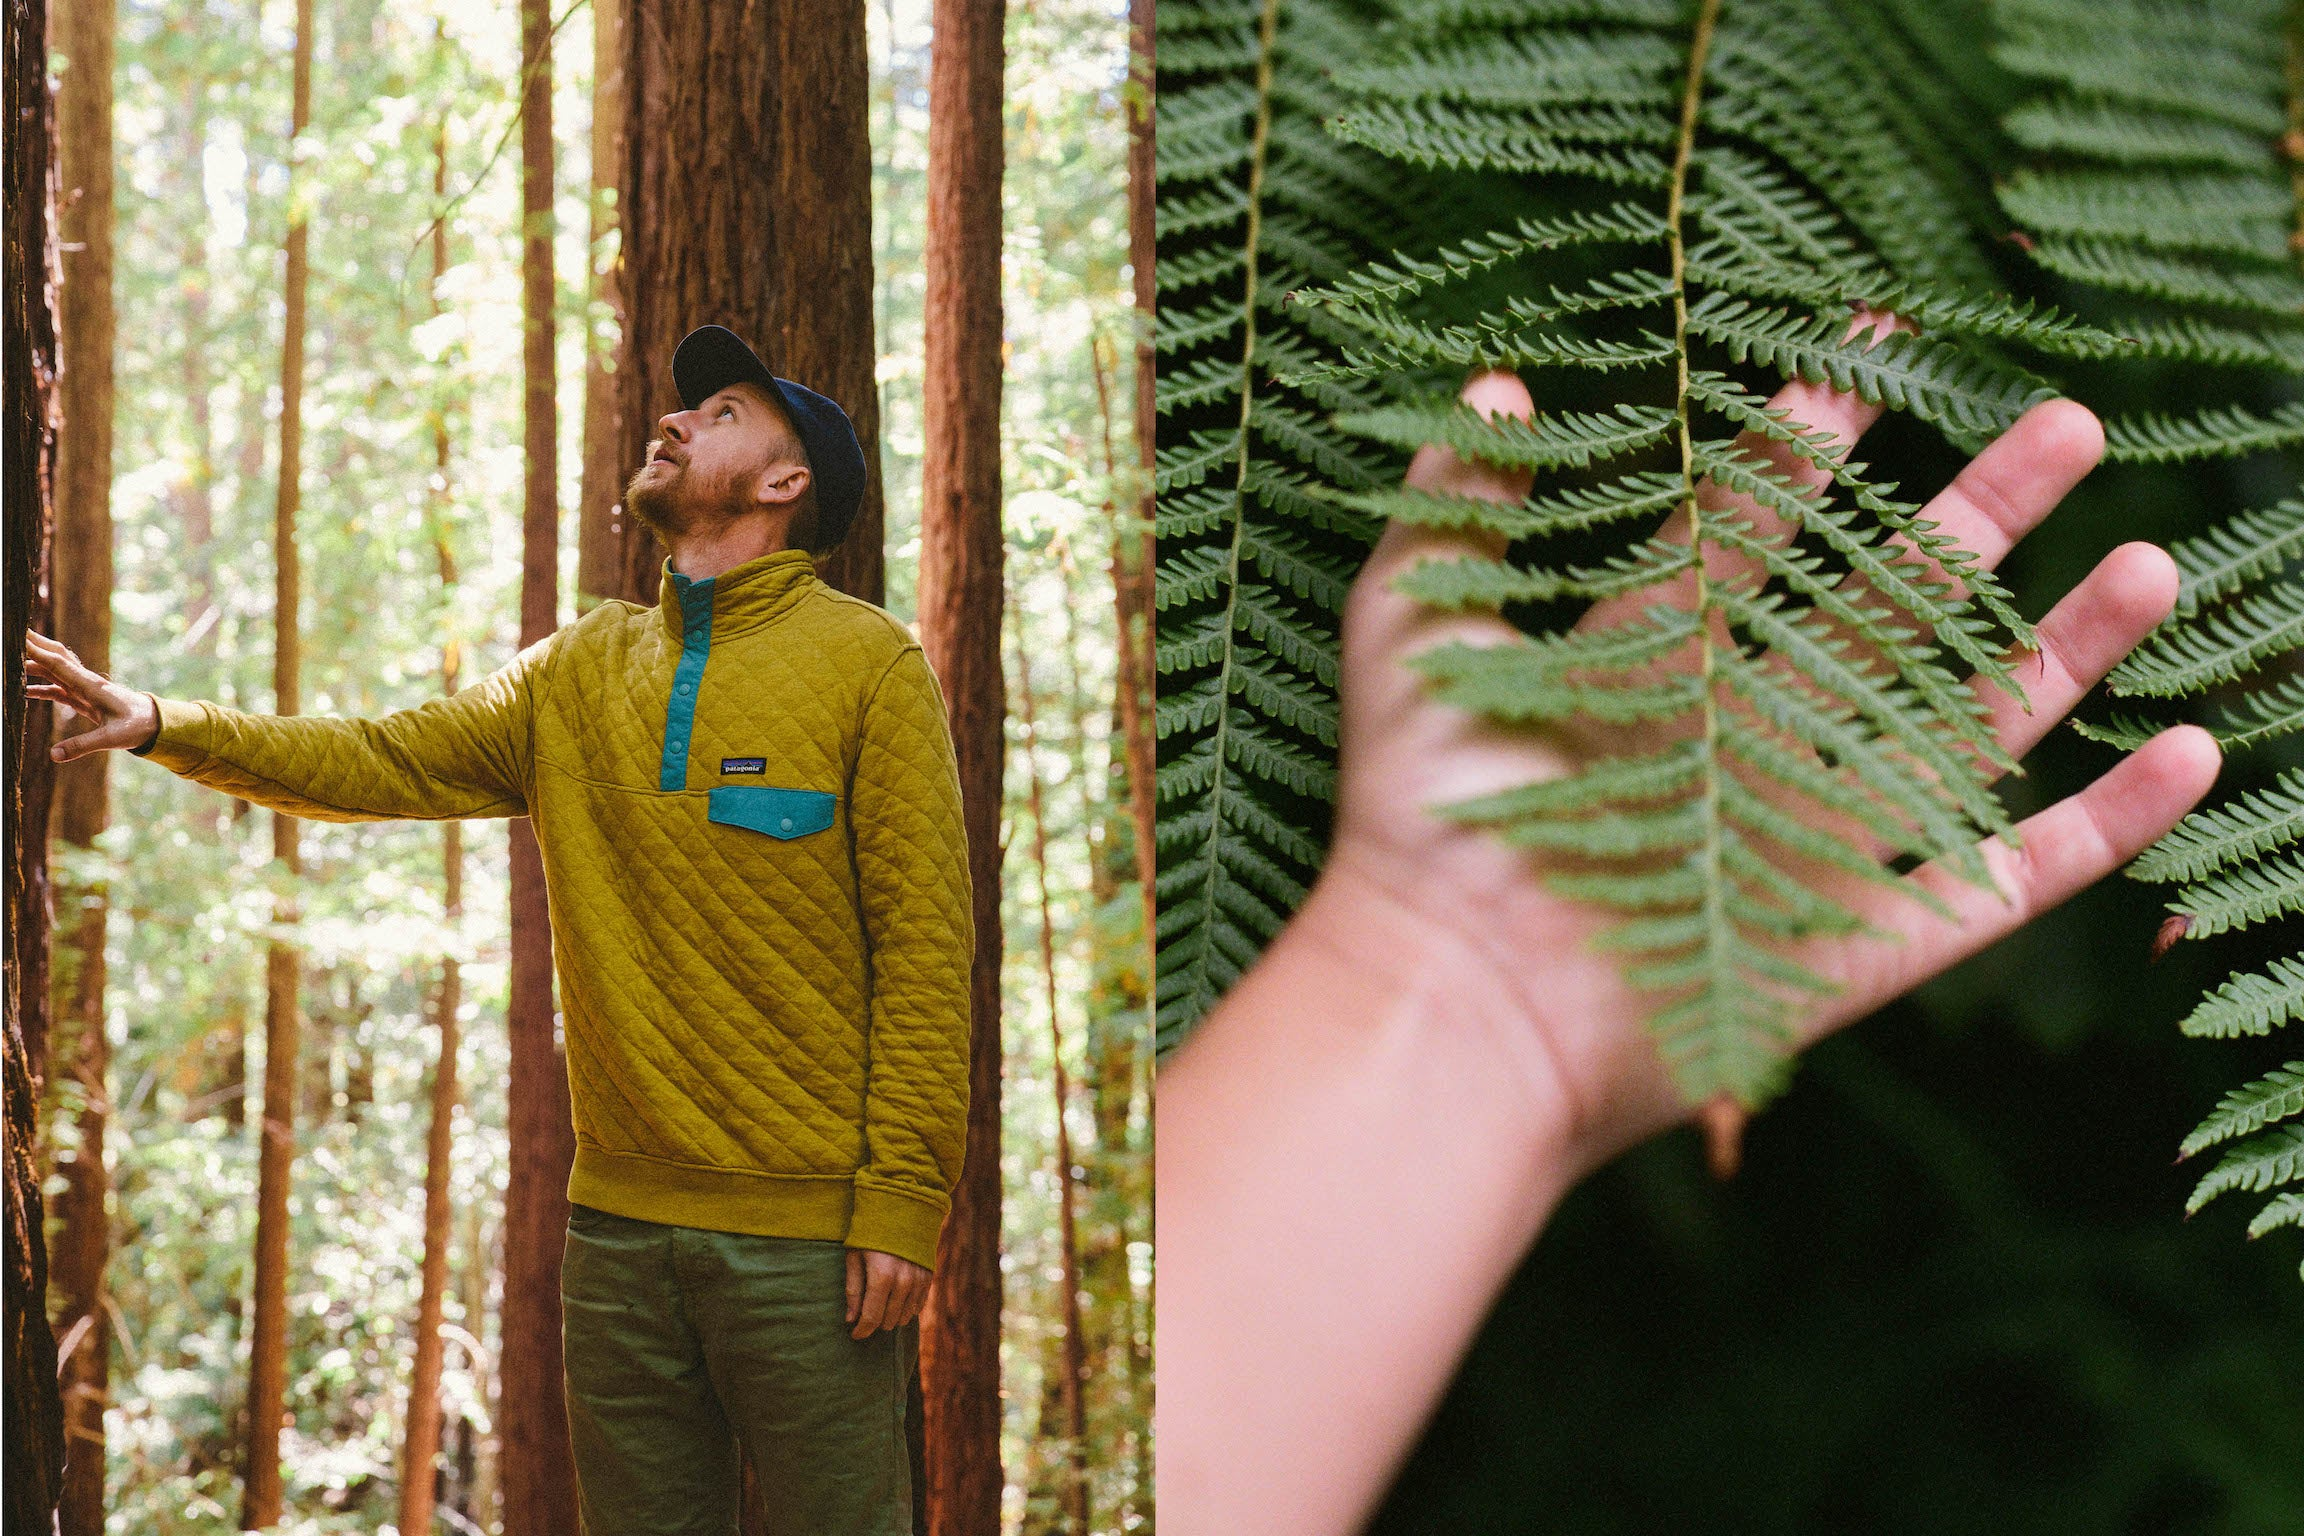 Two images: on the left, a man wears a sporty pullover while looking up at a tall redwood tree. On the right, a hand gently touches a green palm frond. Shot by Kate Rentz.